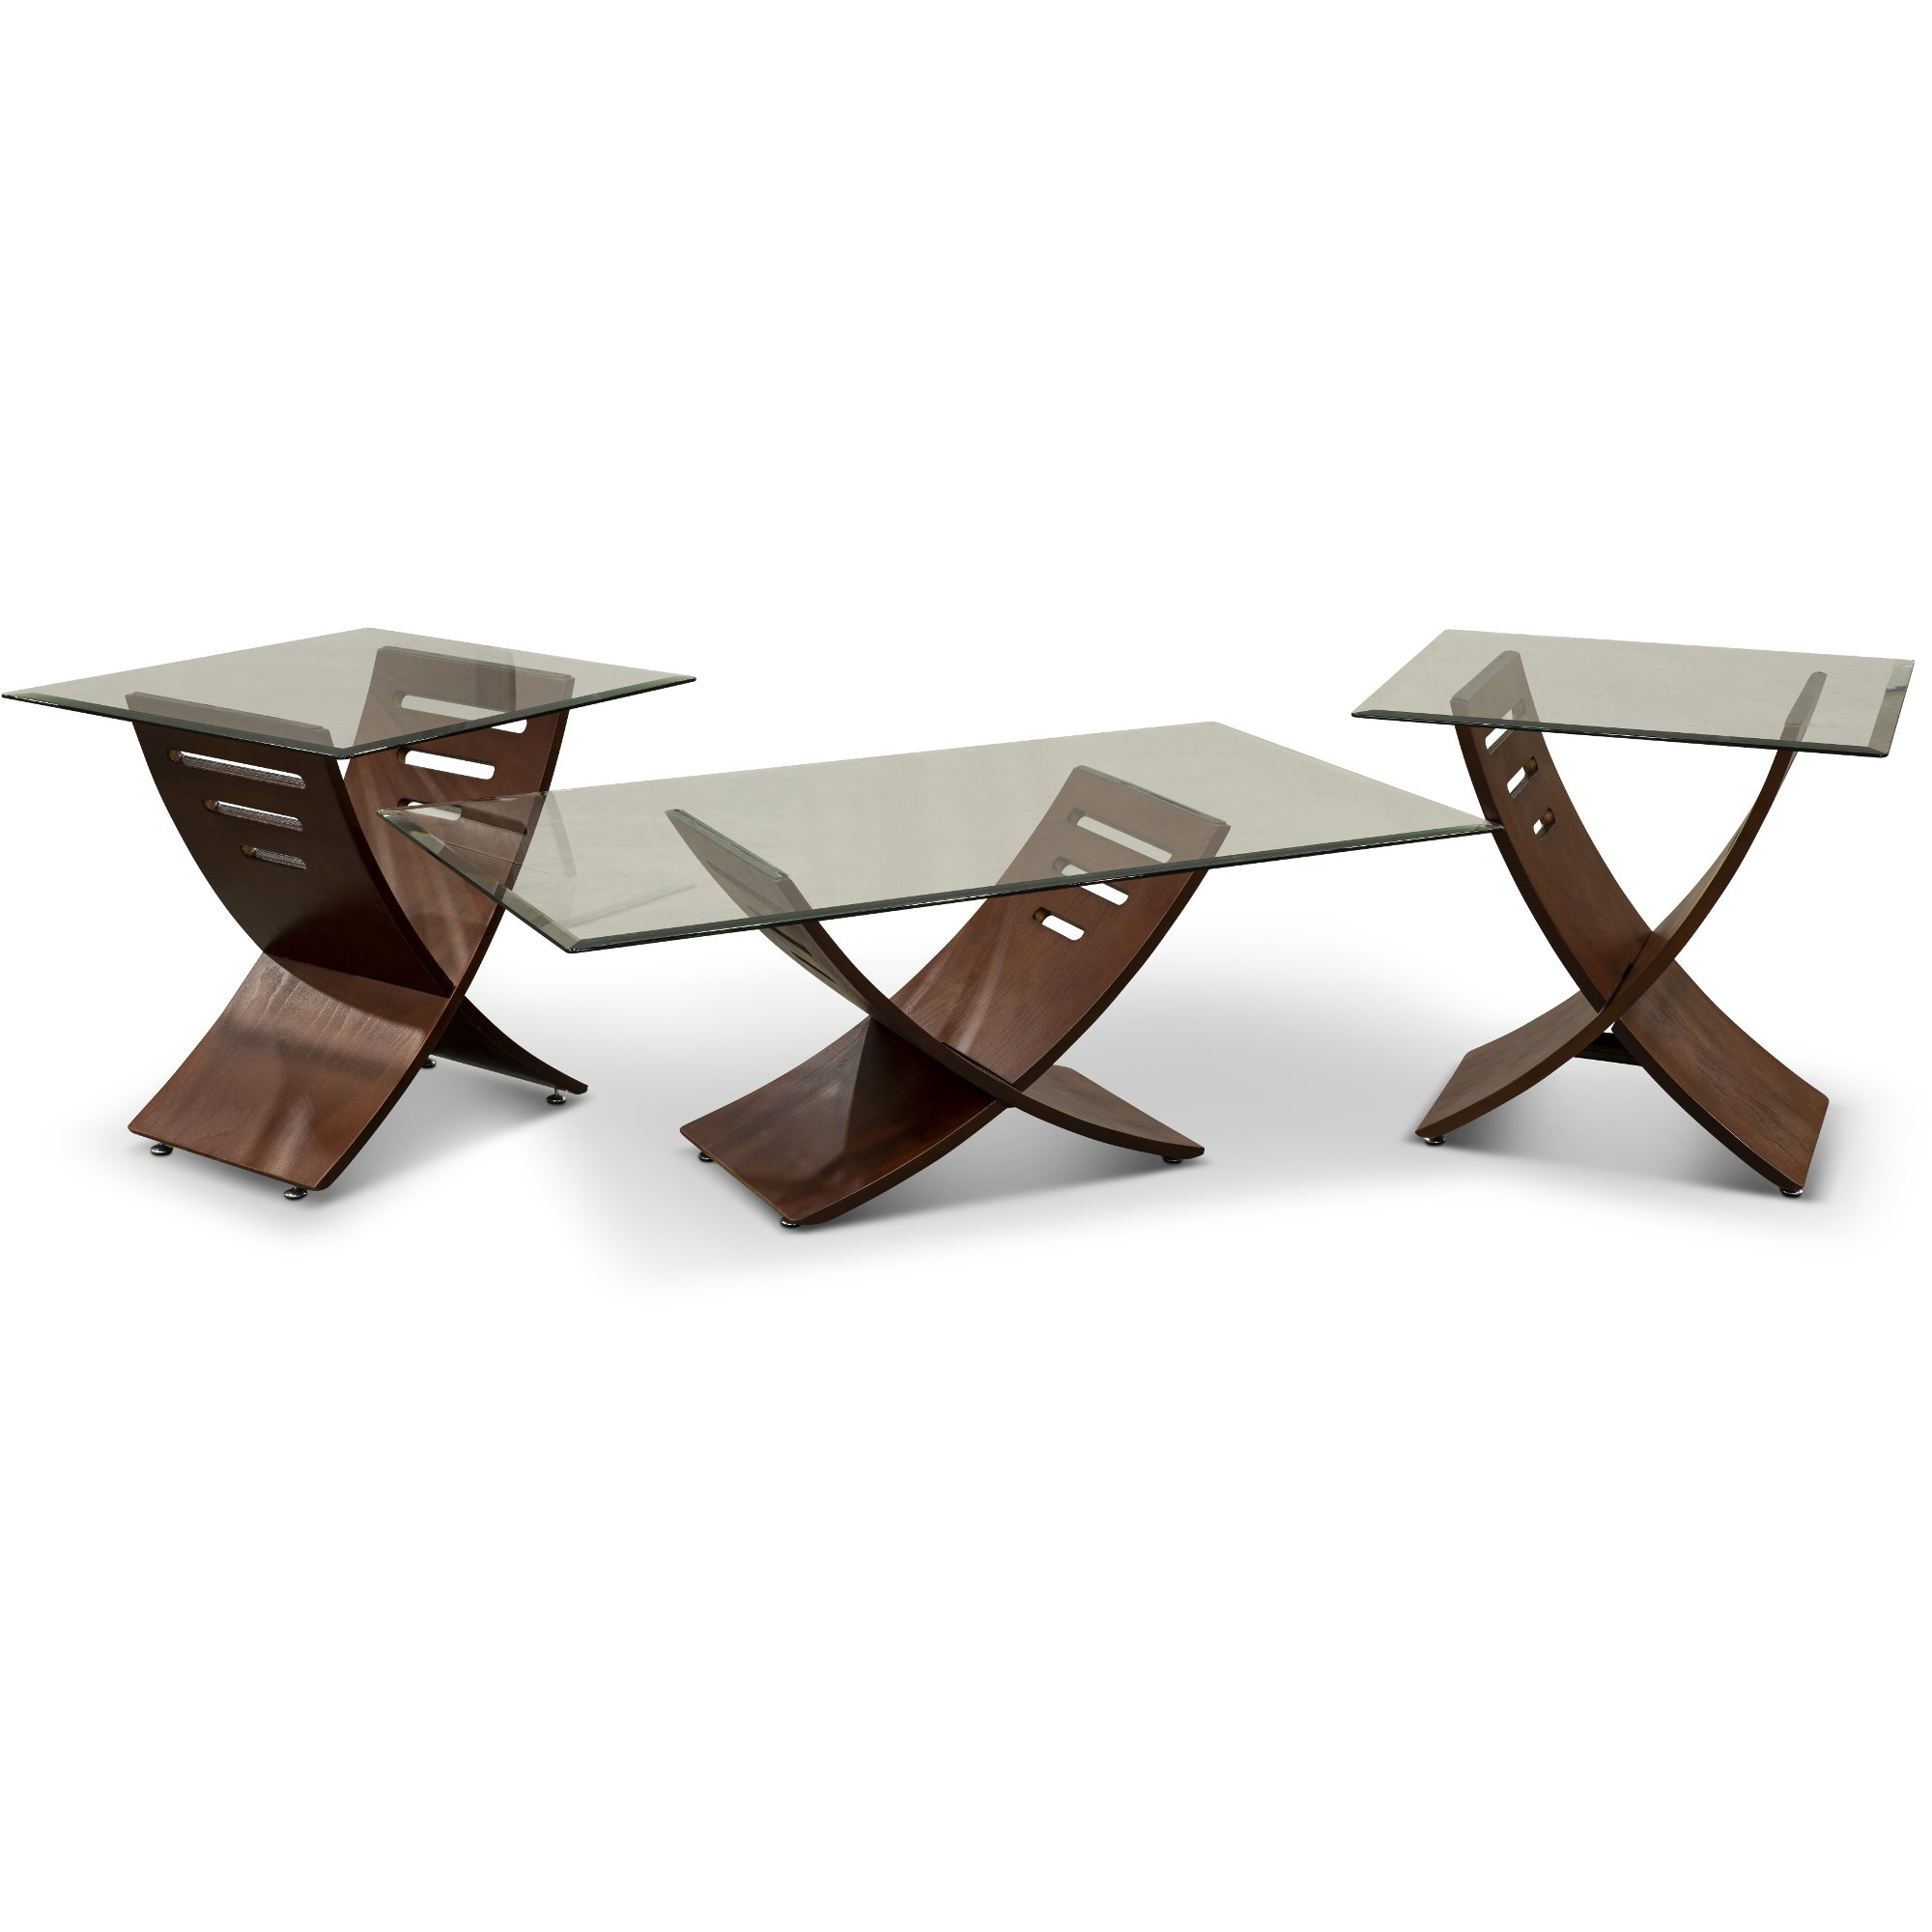 Espresso brown and glass 3 piece coffee table set rc willey furniture store